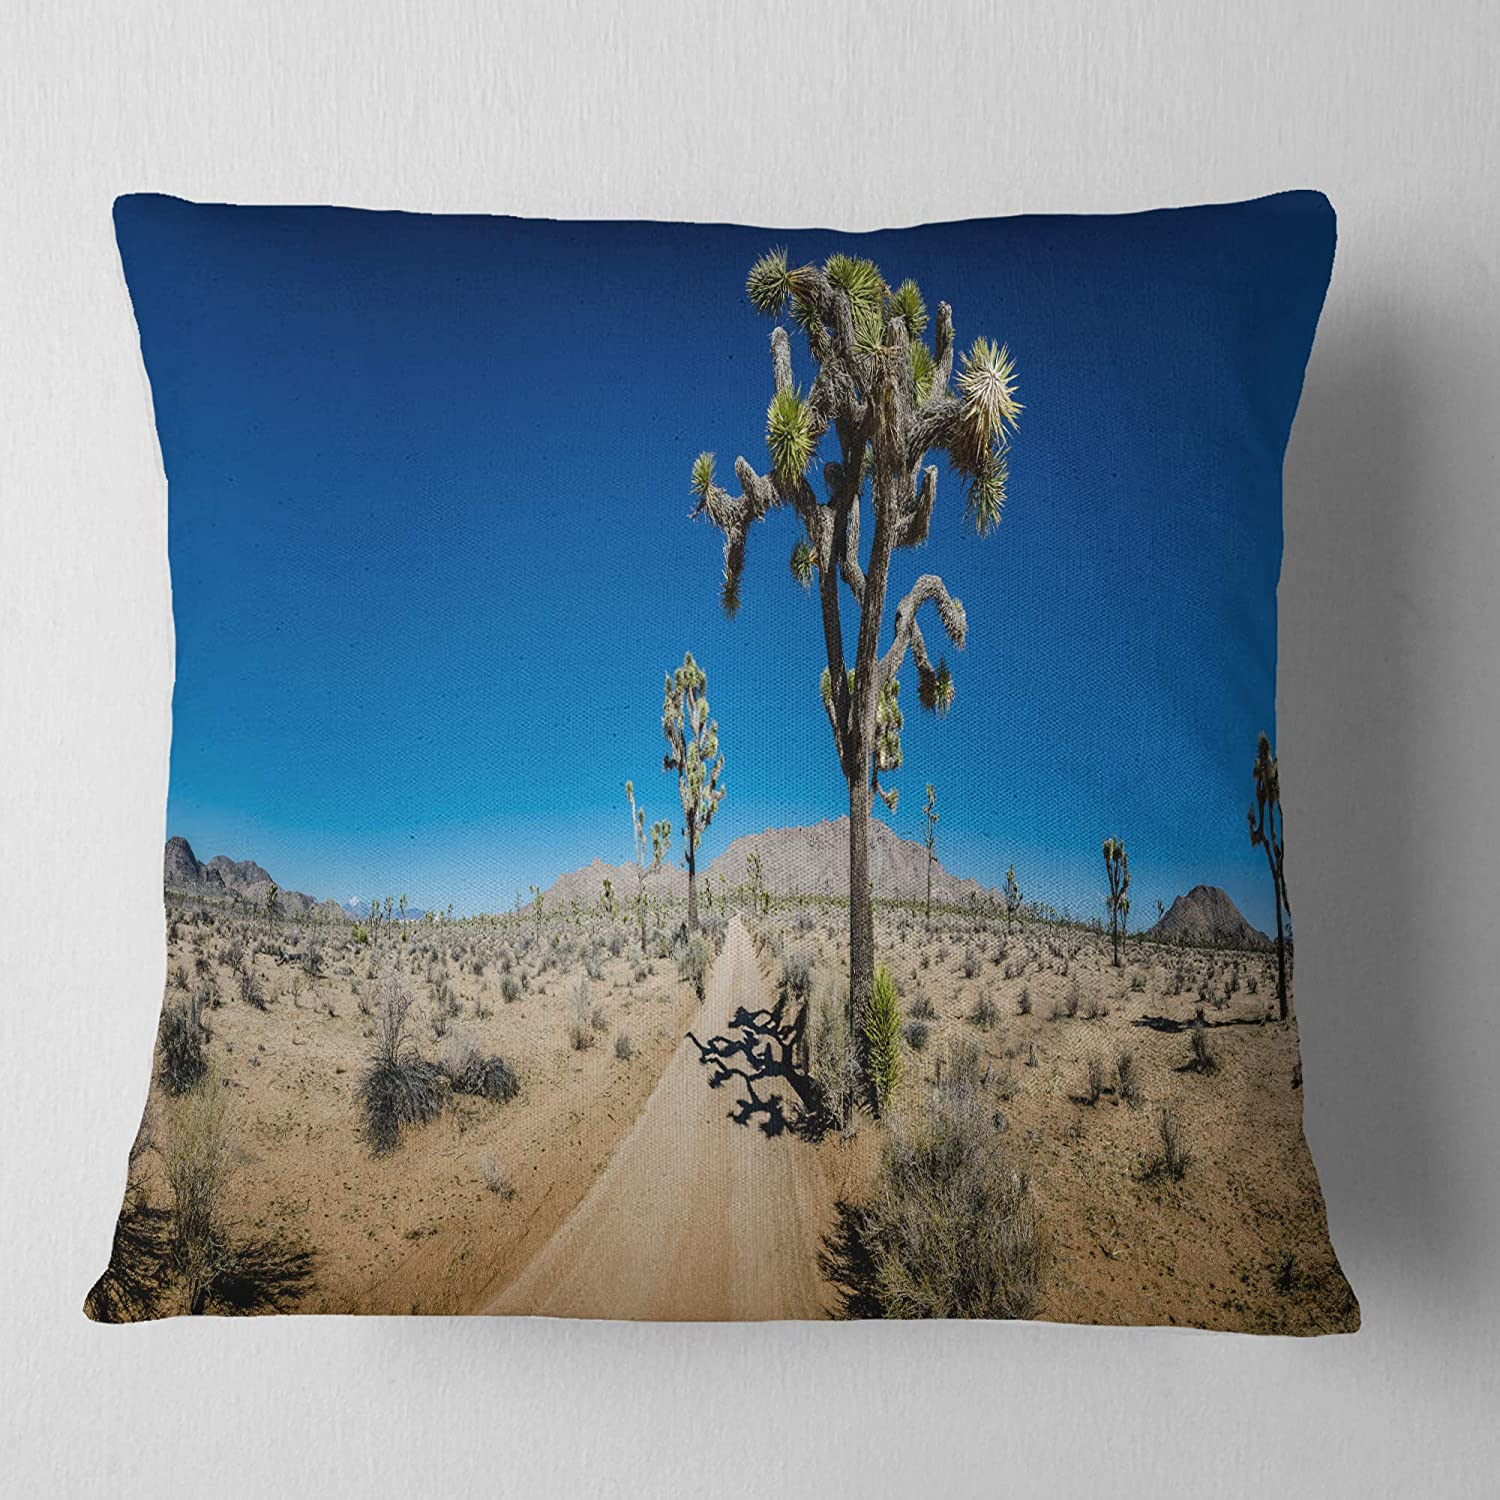 x 18 in in Sofa Throw Pillow 18 in Insert Printed On Both Side Designart CU11415-18-18 Sandy Desert Road Panorama Landscape Wall Cushion Cover for Living Room